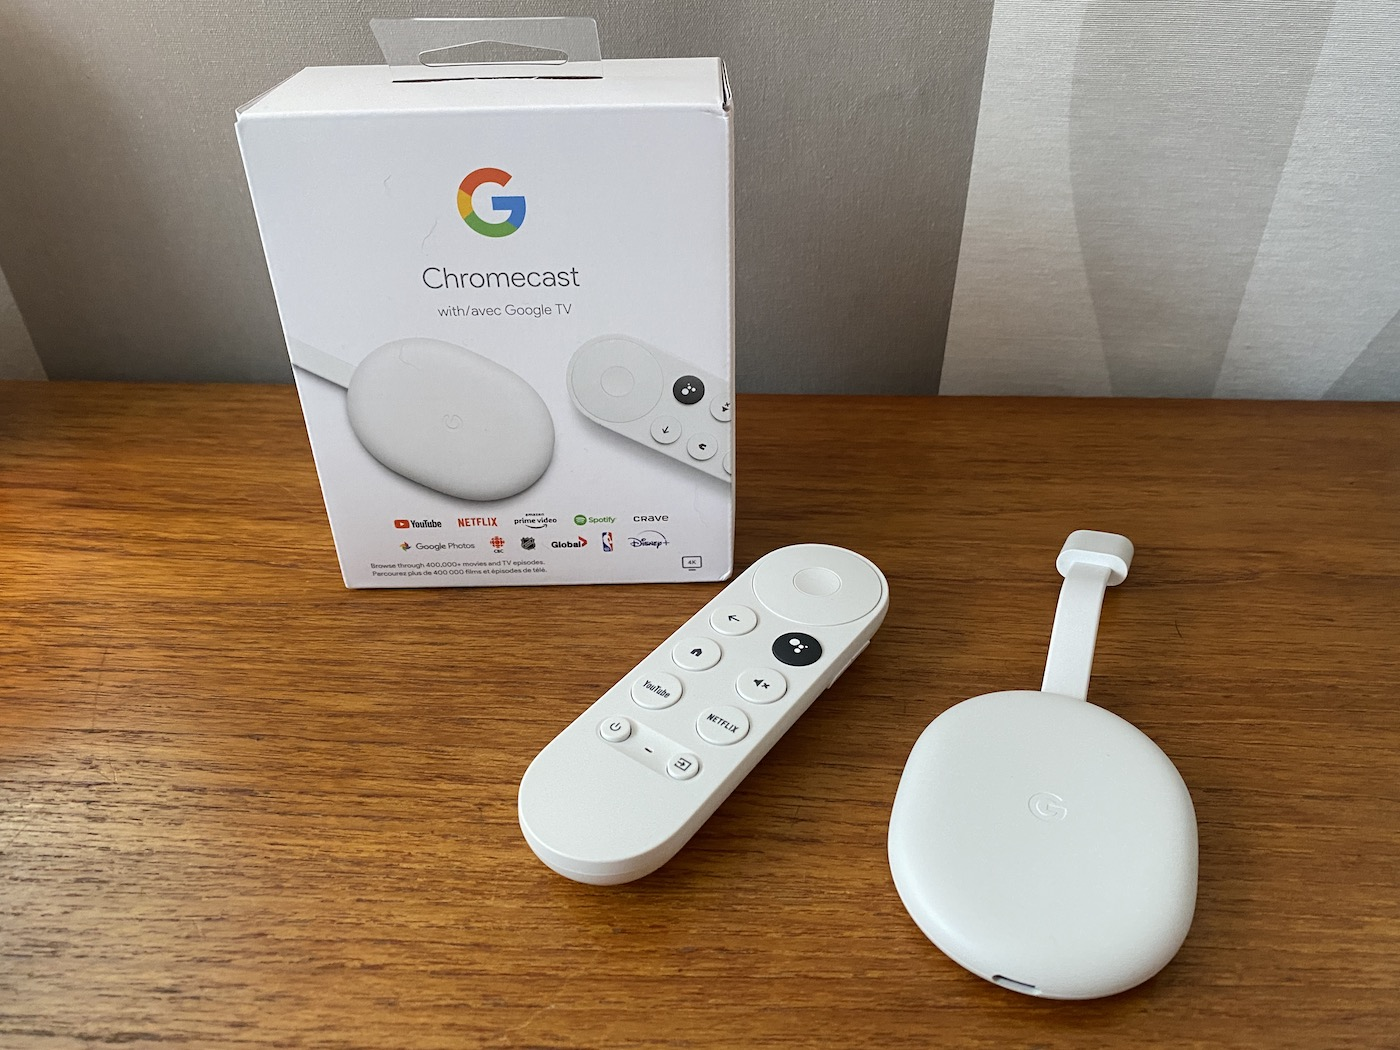 chromeccast with google tv, review